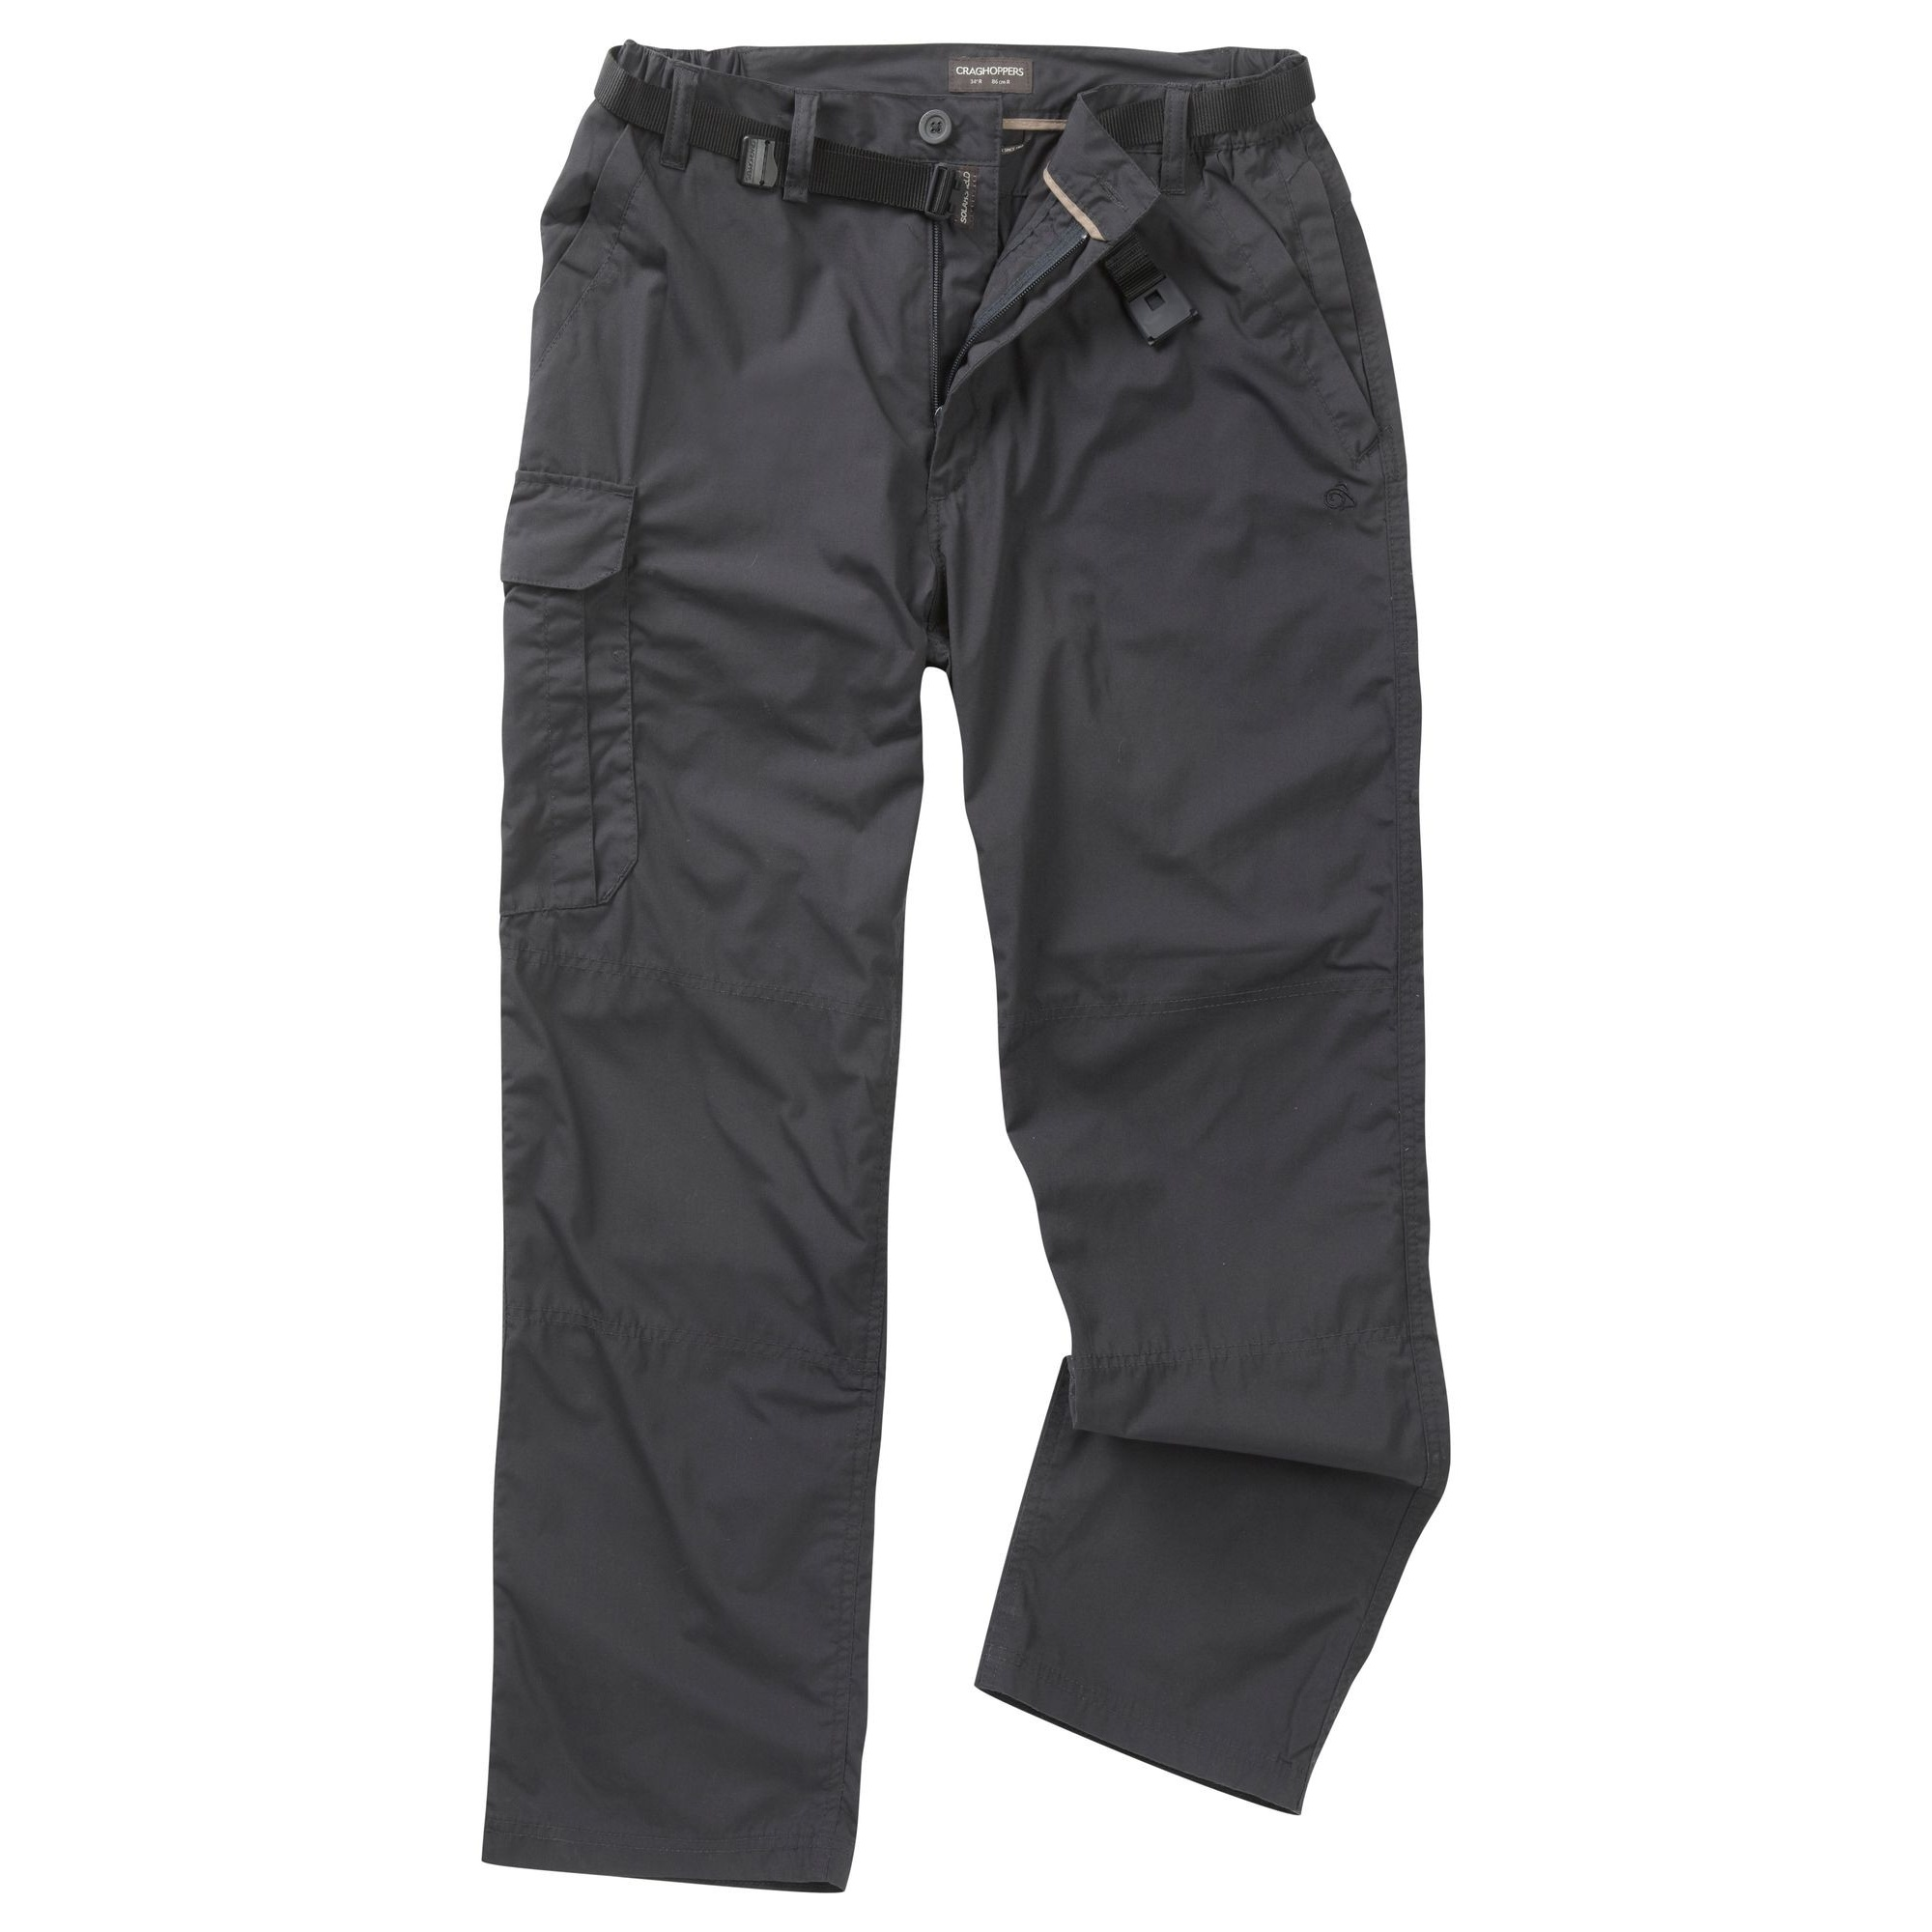 Craghoppers Outdoor Mens Kiwi Winter Lined Walking Trousers (30R) (Black Pepper)